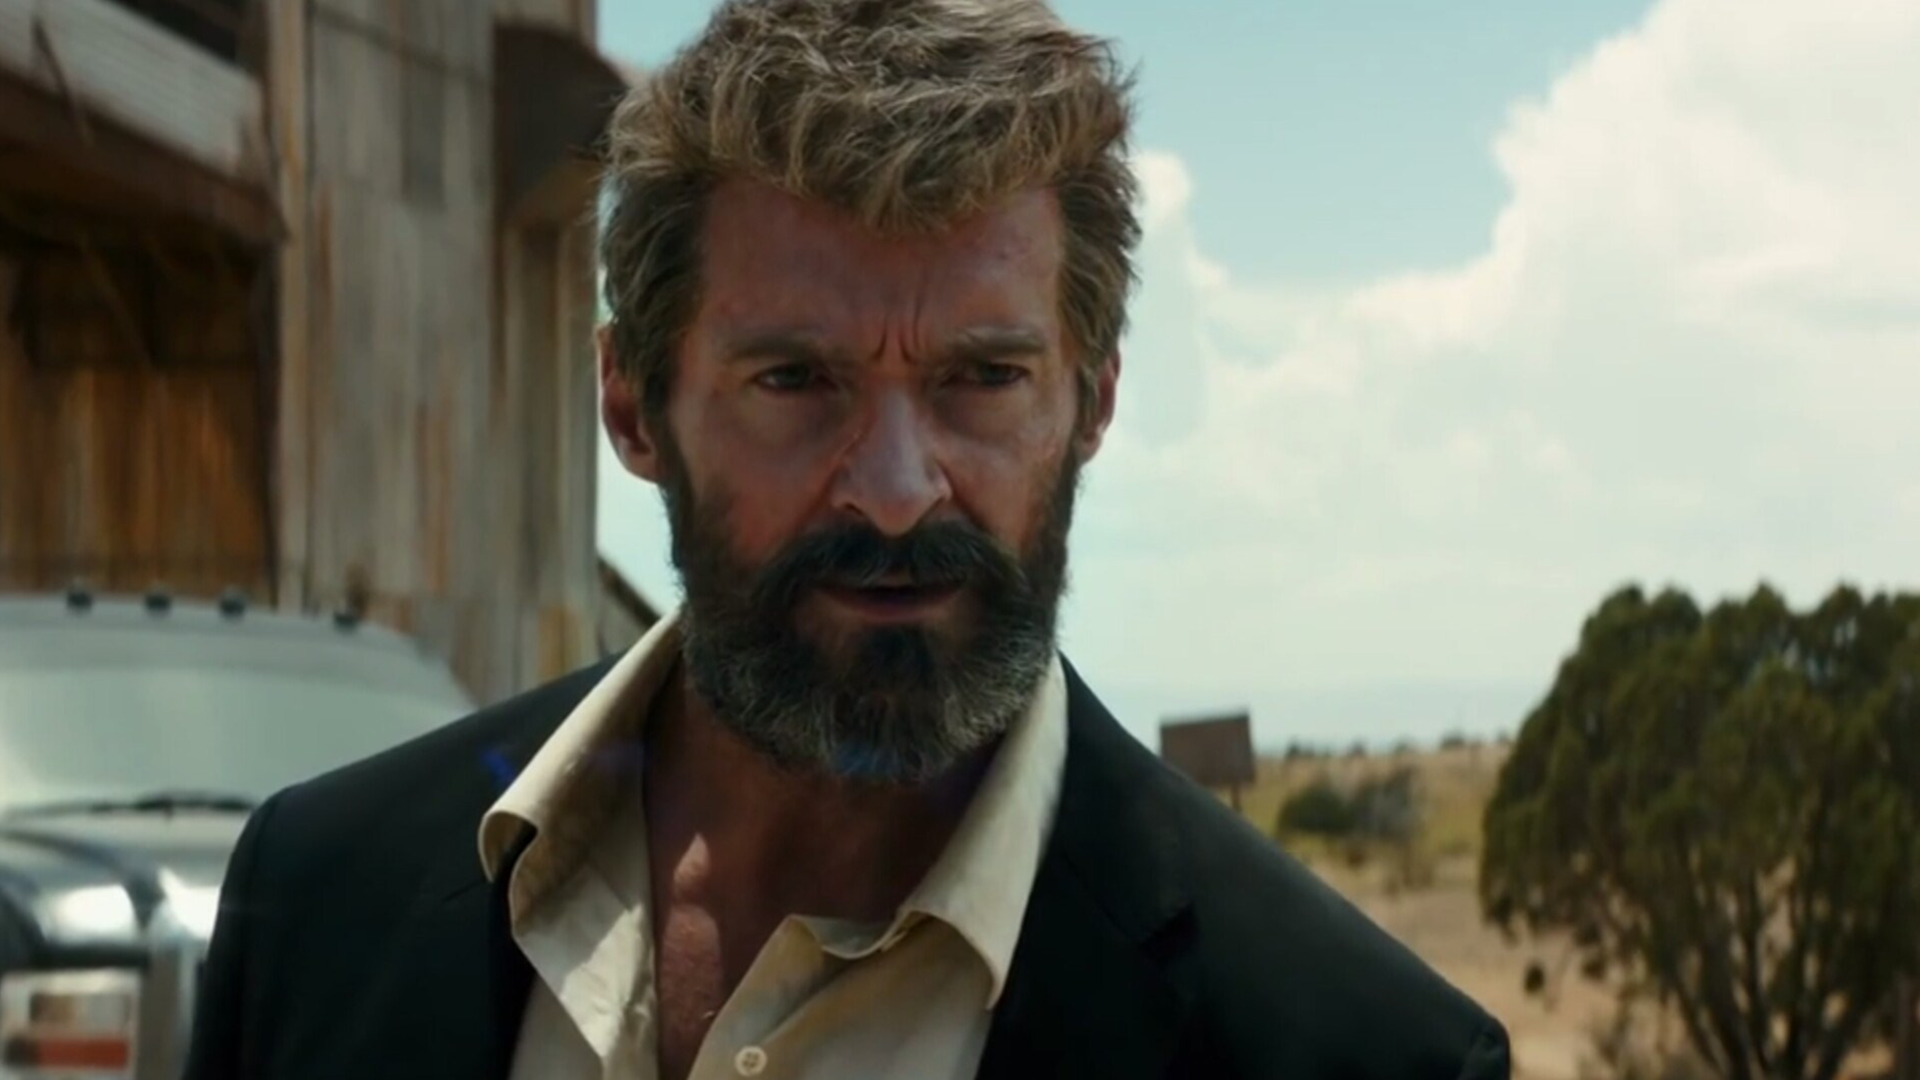 logan wolverine Top 12 Hollywood Movies to Look Forward to in 2017